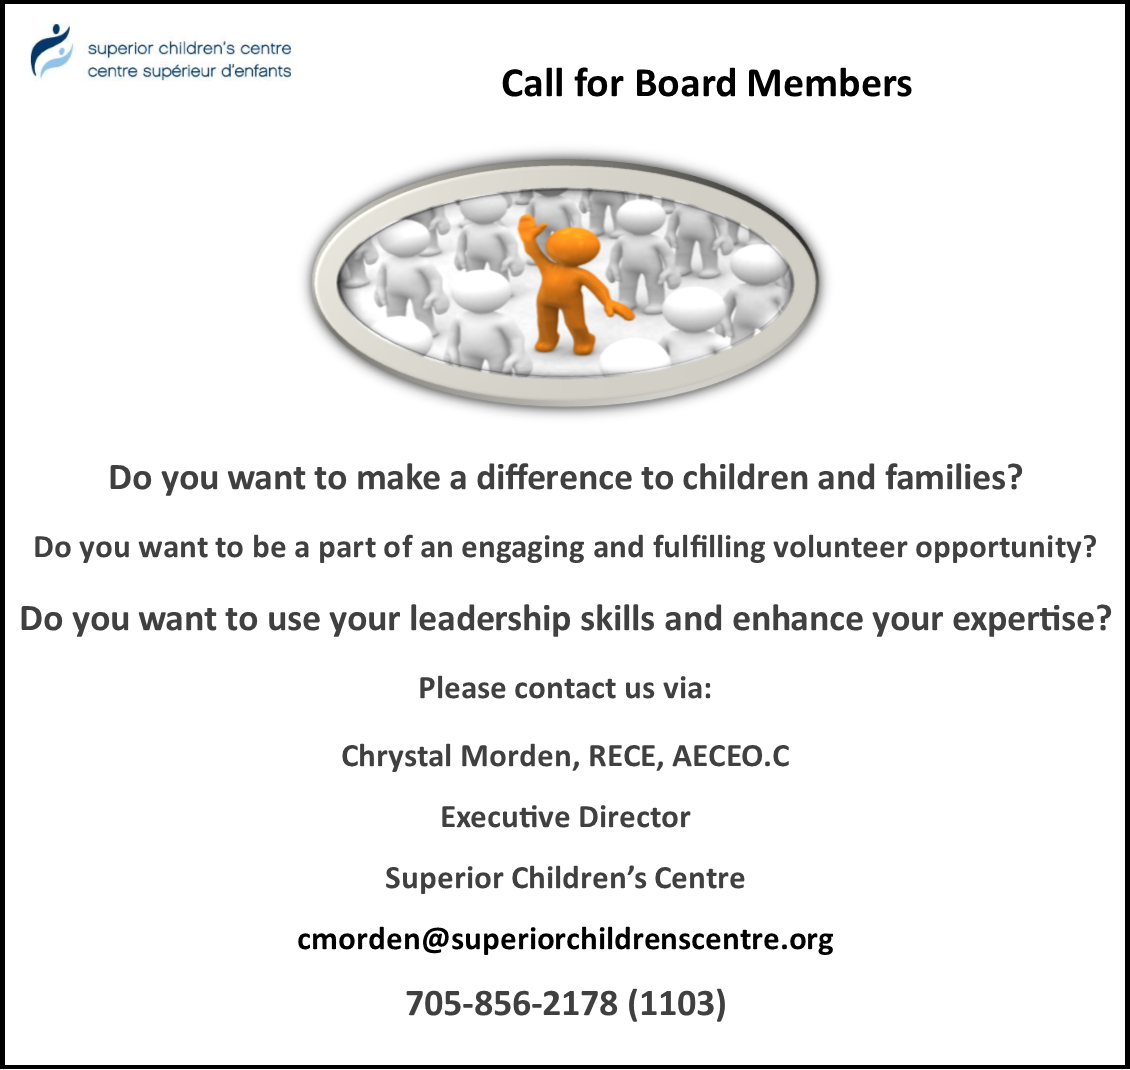 aug 15 2019- superior children's center board members.png